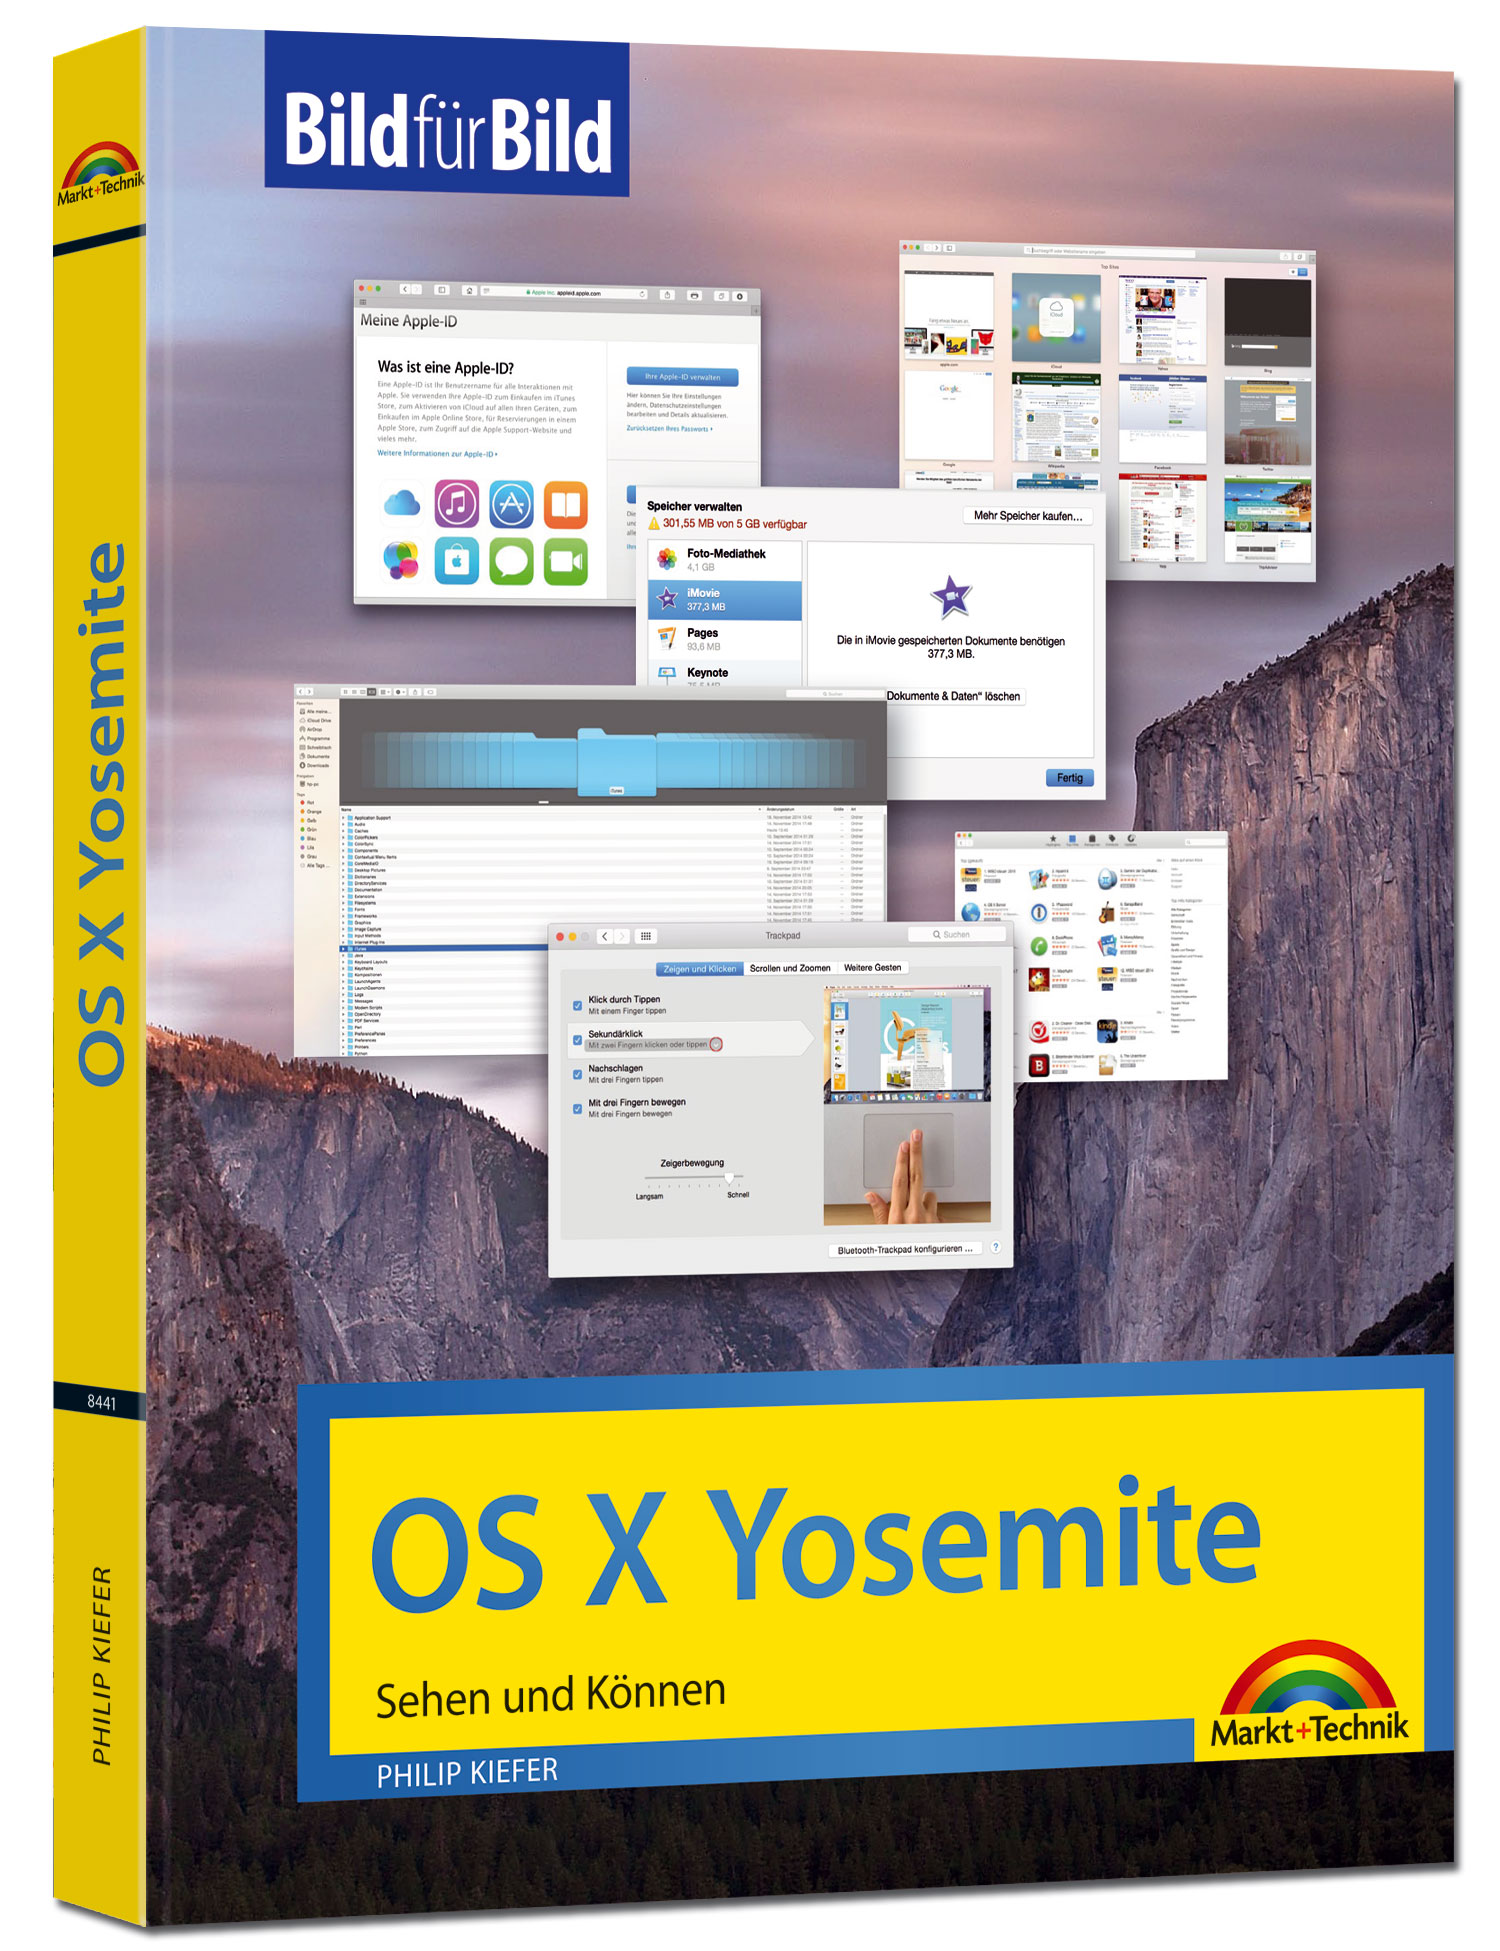 OS-X-Yosemite-Philip-Kiefer